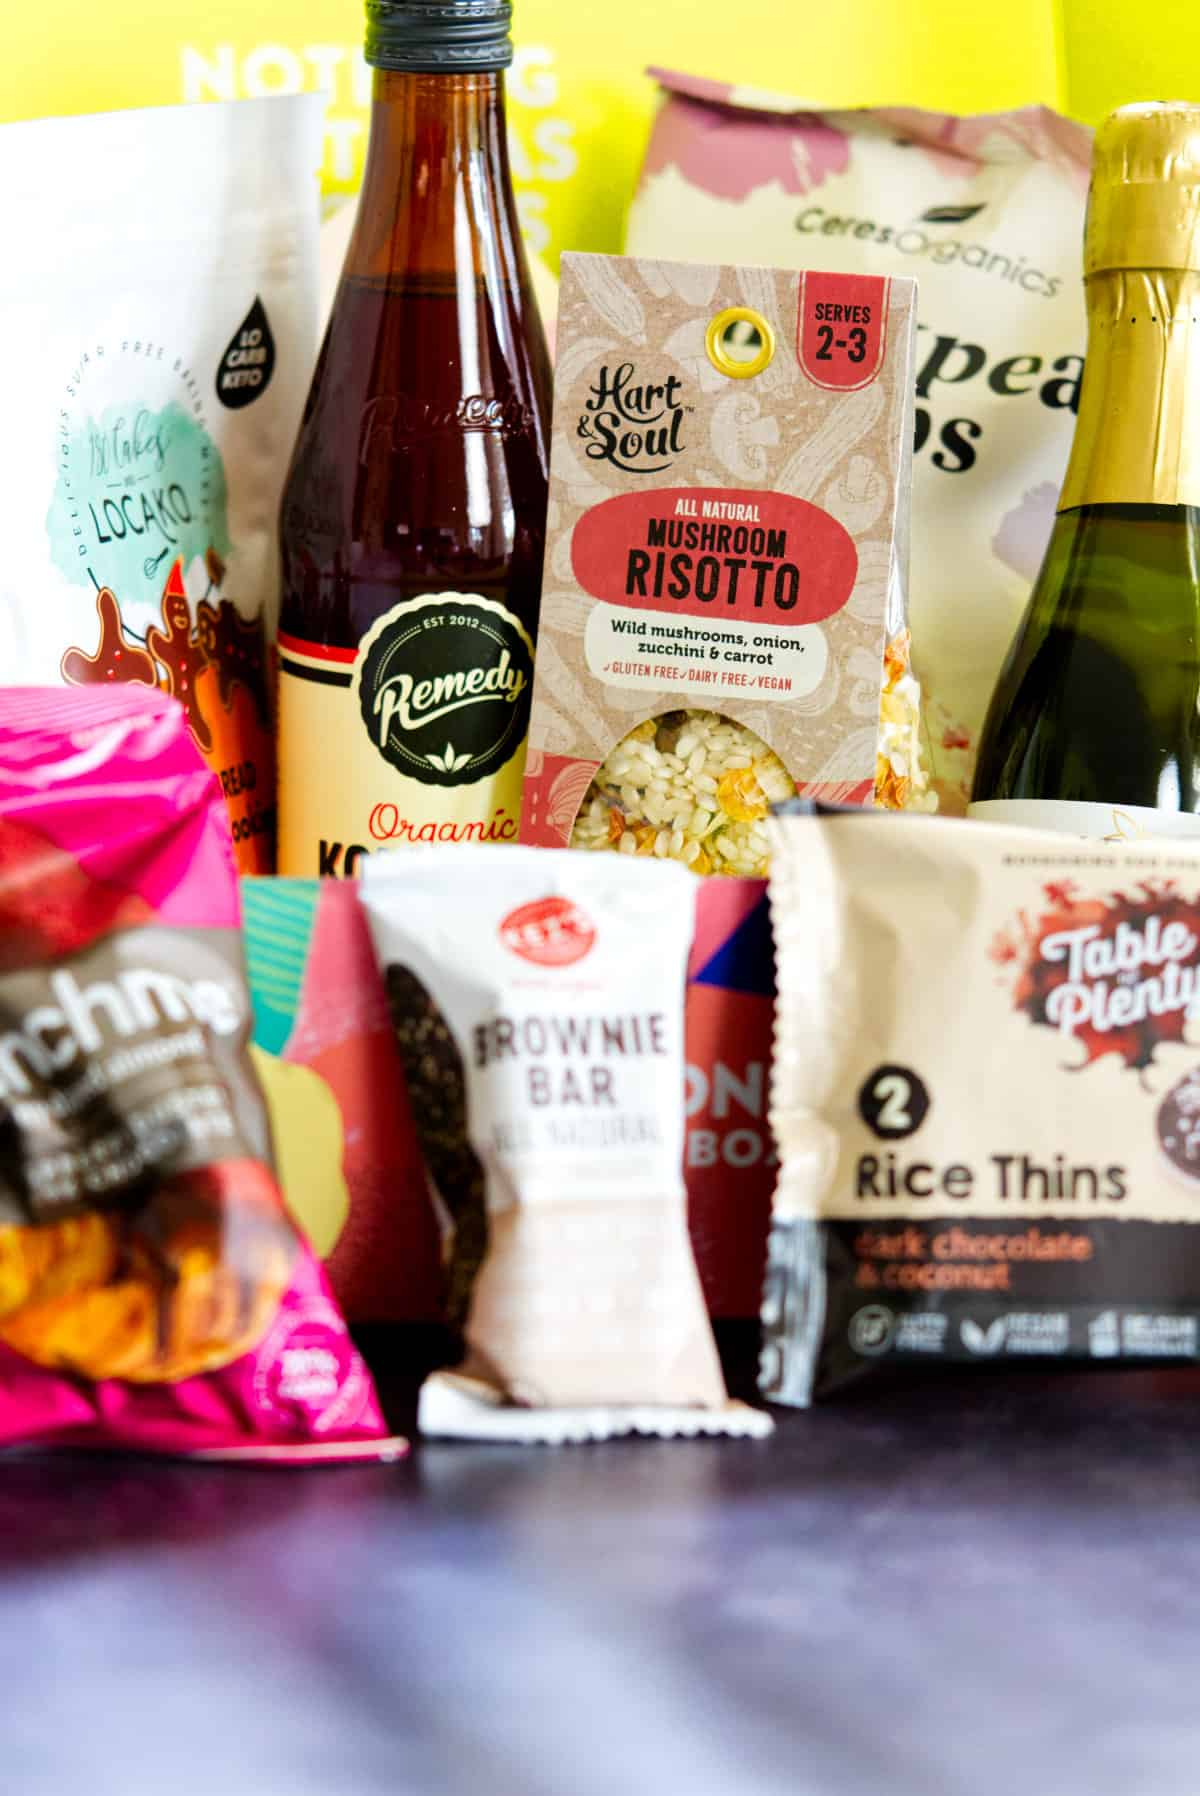 GoodnessMe contents including rissotto, brownie bar, kombucha...